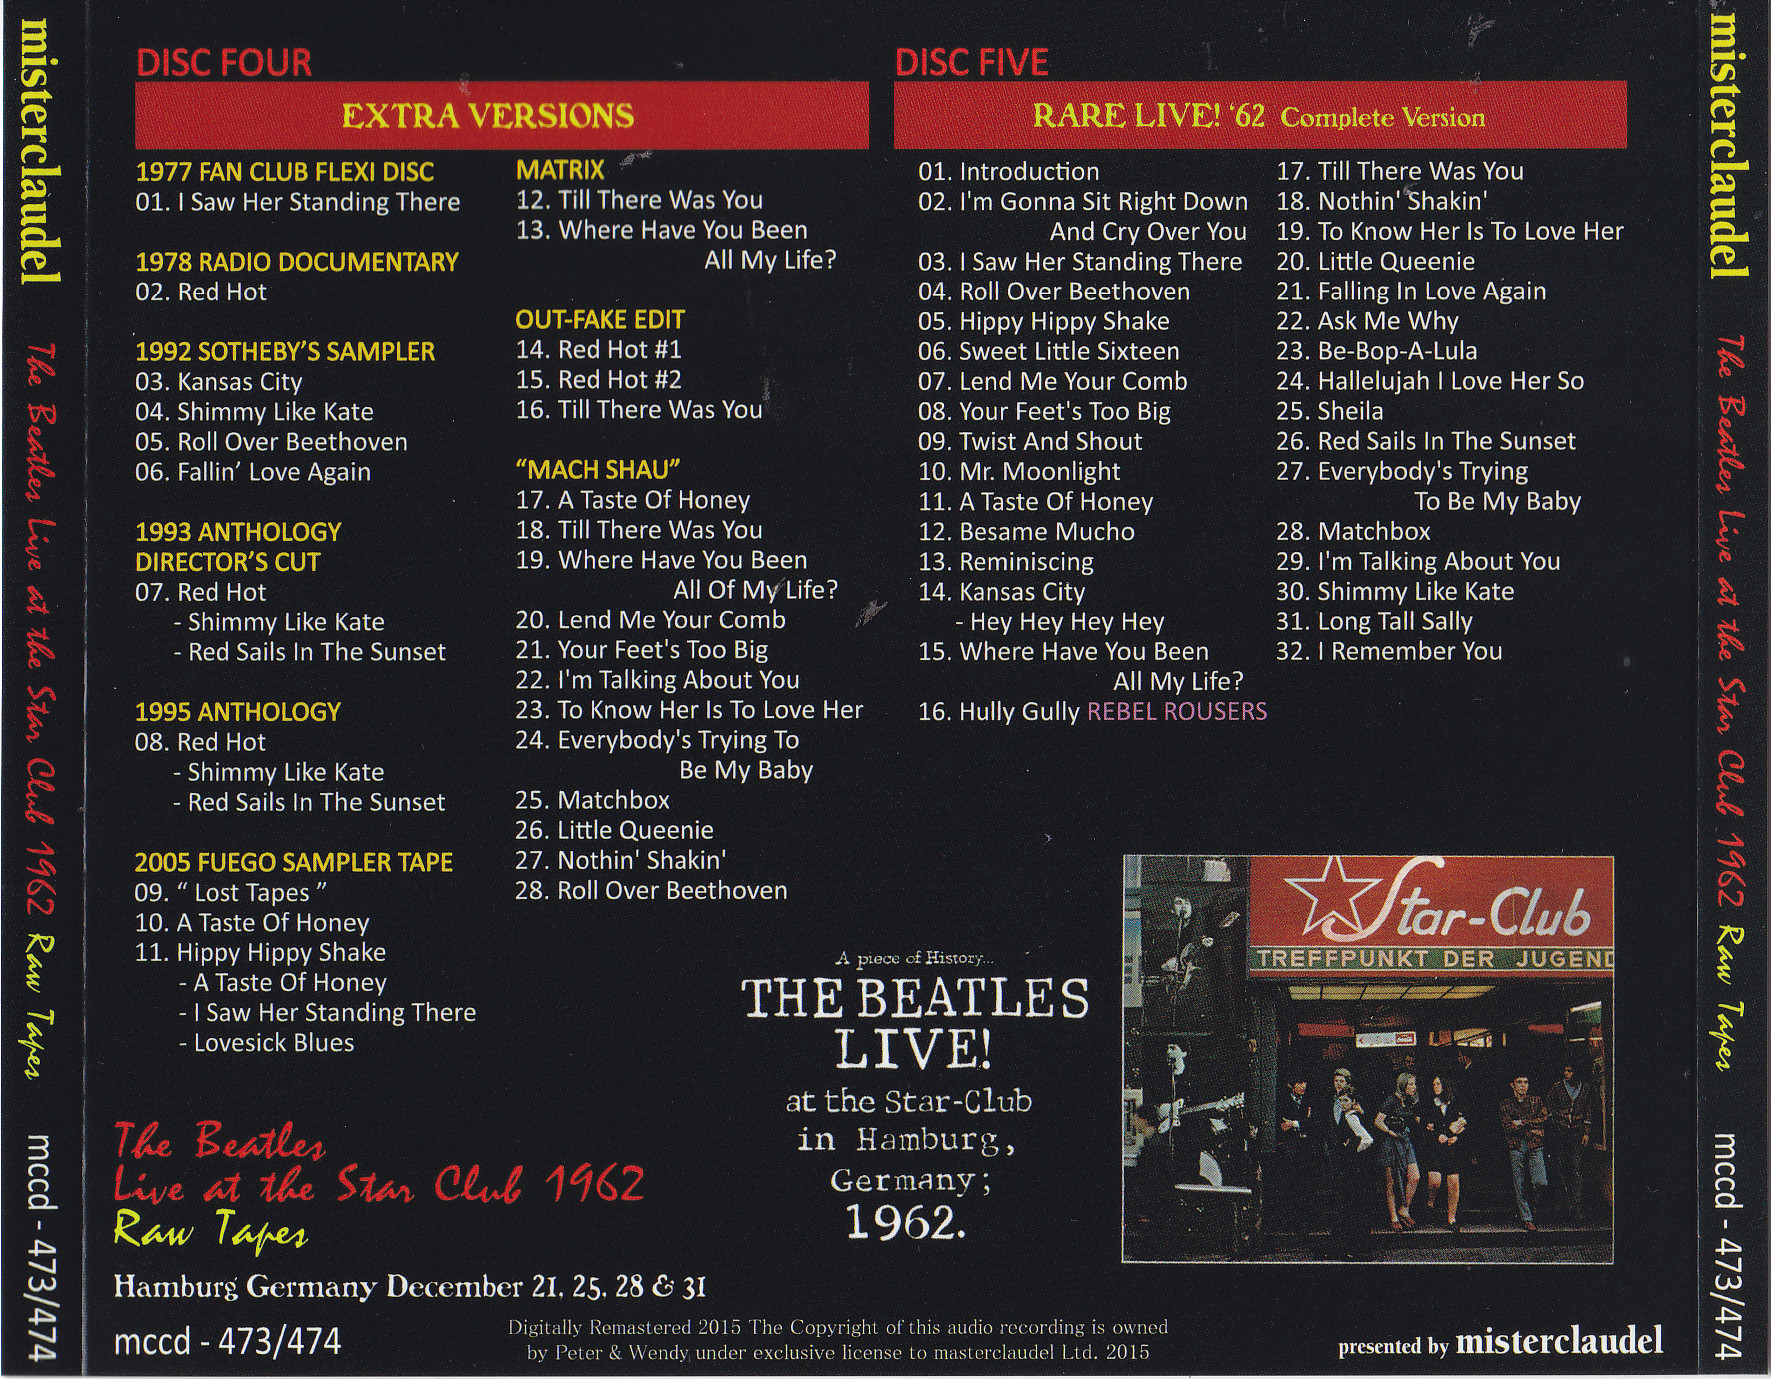 The beatles live at the star-club in hamburg germany 1962 rar | The